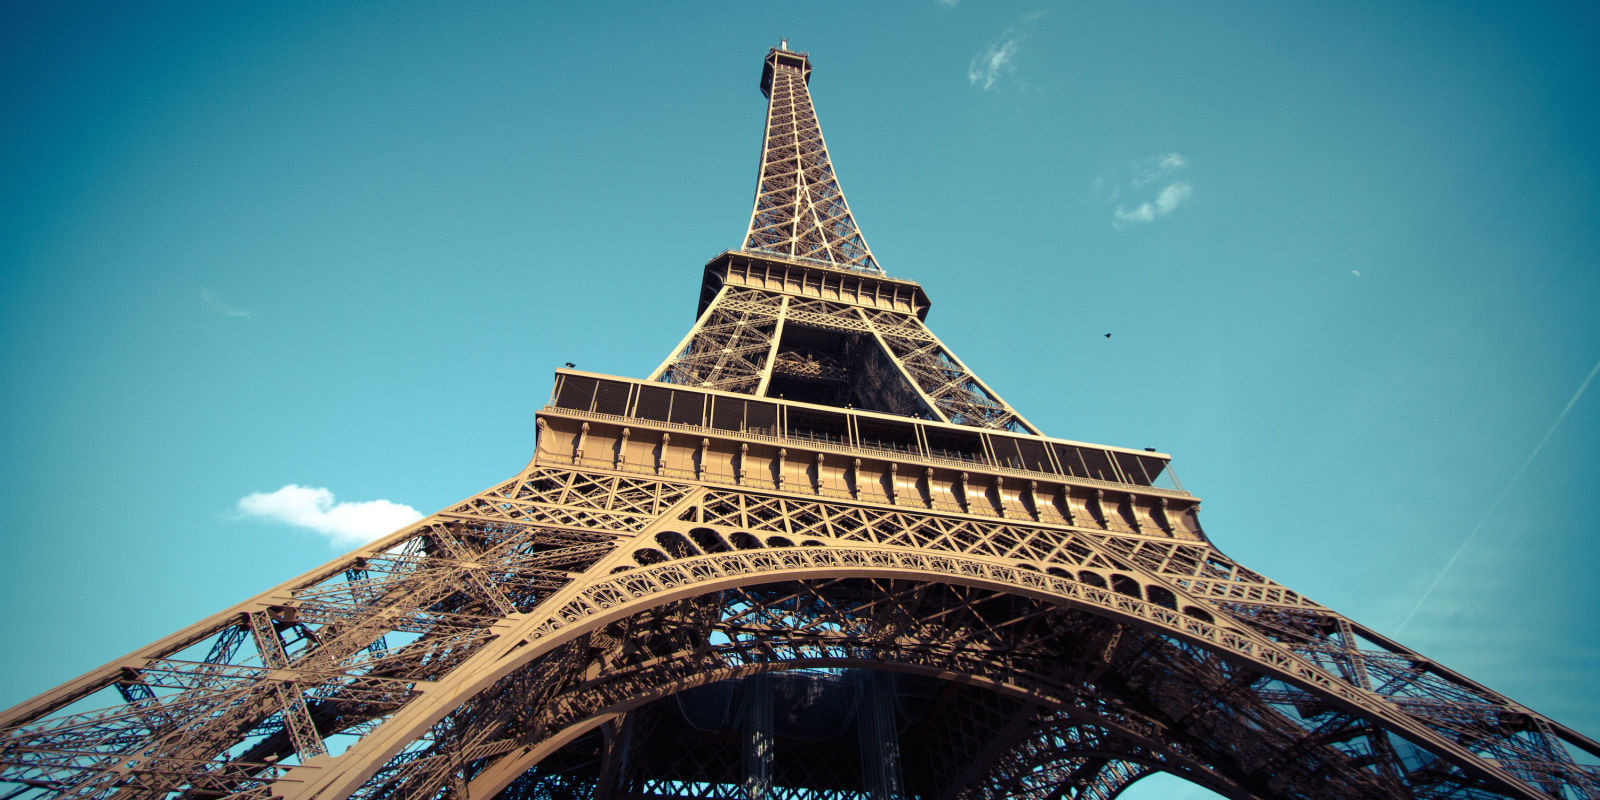 10 famous landmarks with hidden rooms famous places secrets Eiffel tower secret room